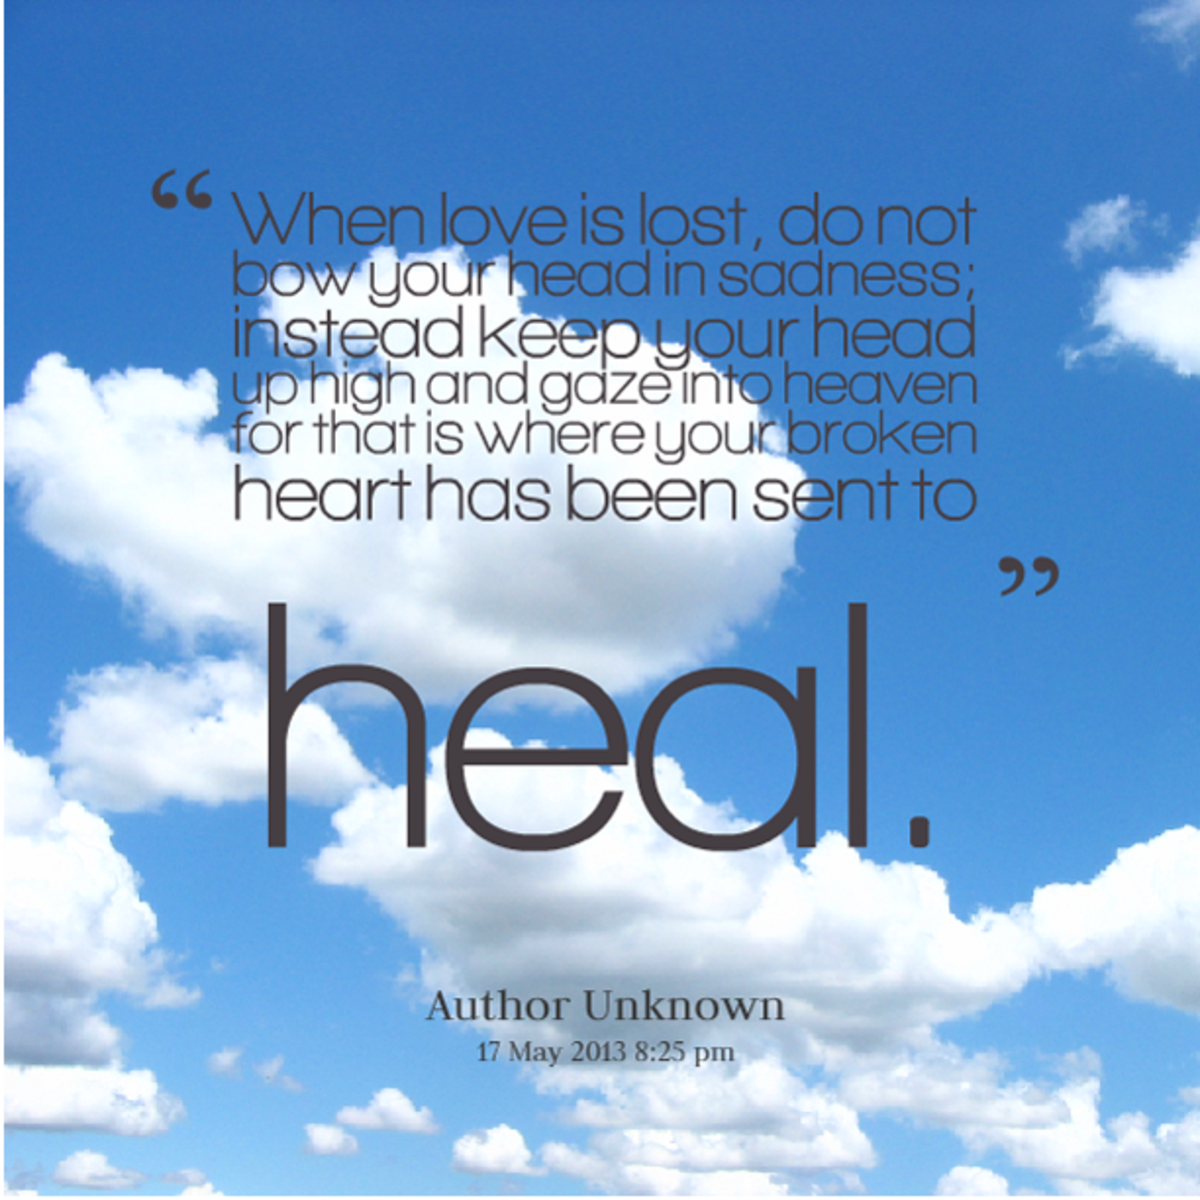 Agree, the how to heal a broken heart quotes